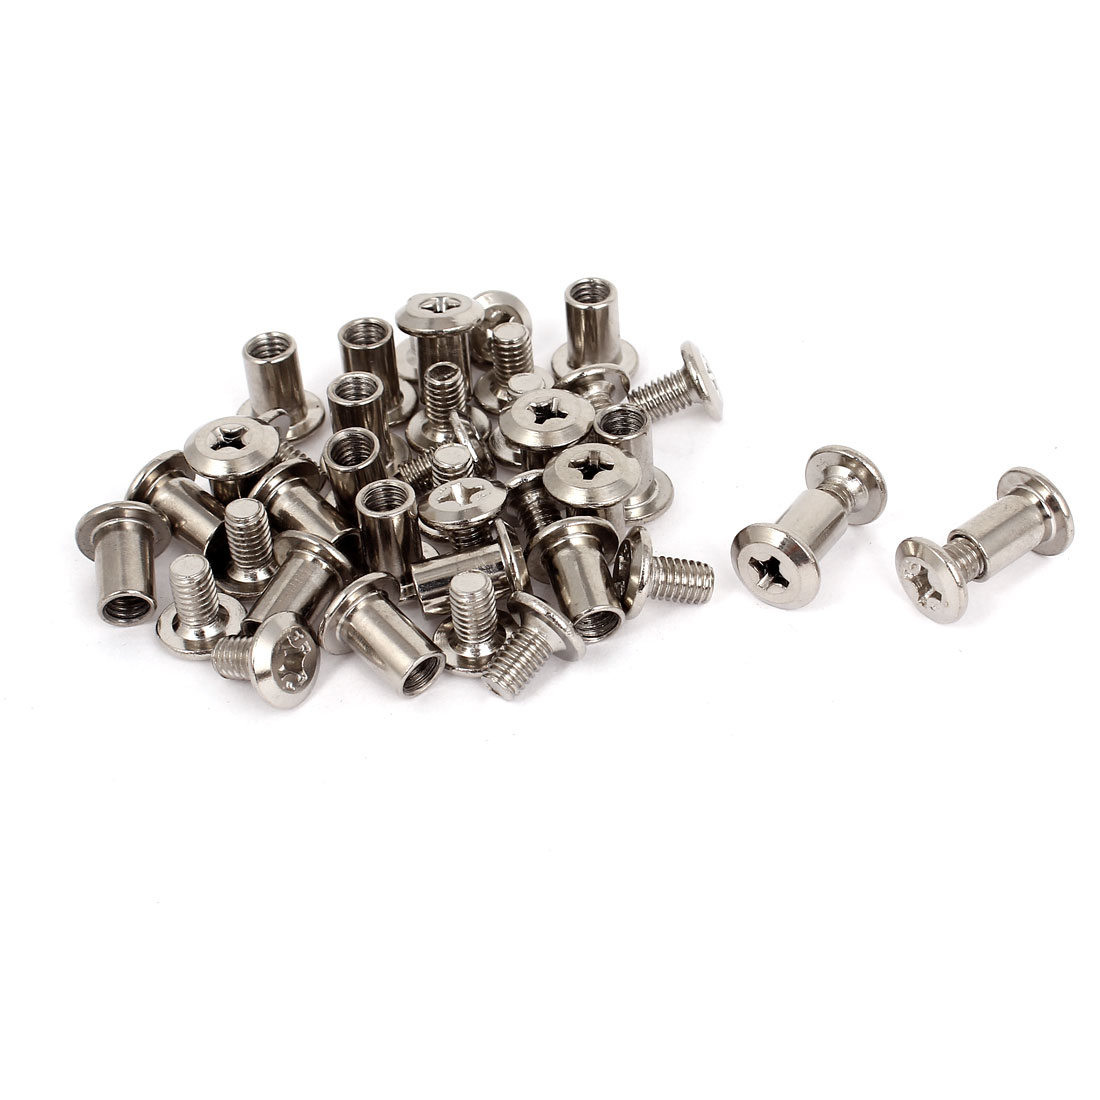 20sets M6 Rivet Phillip Head Nut Countersunk Screw Bolts Furniture Fitting